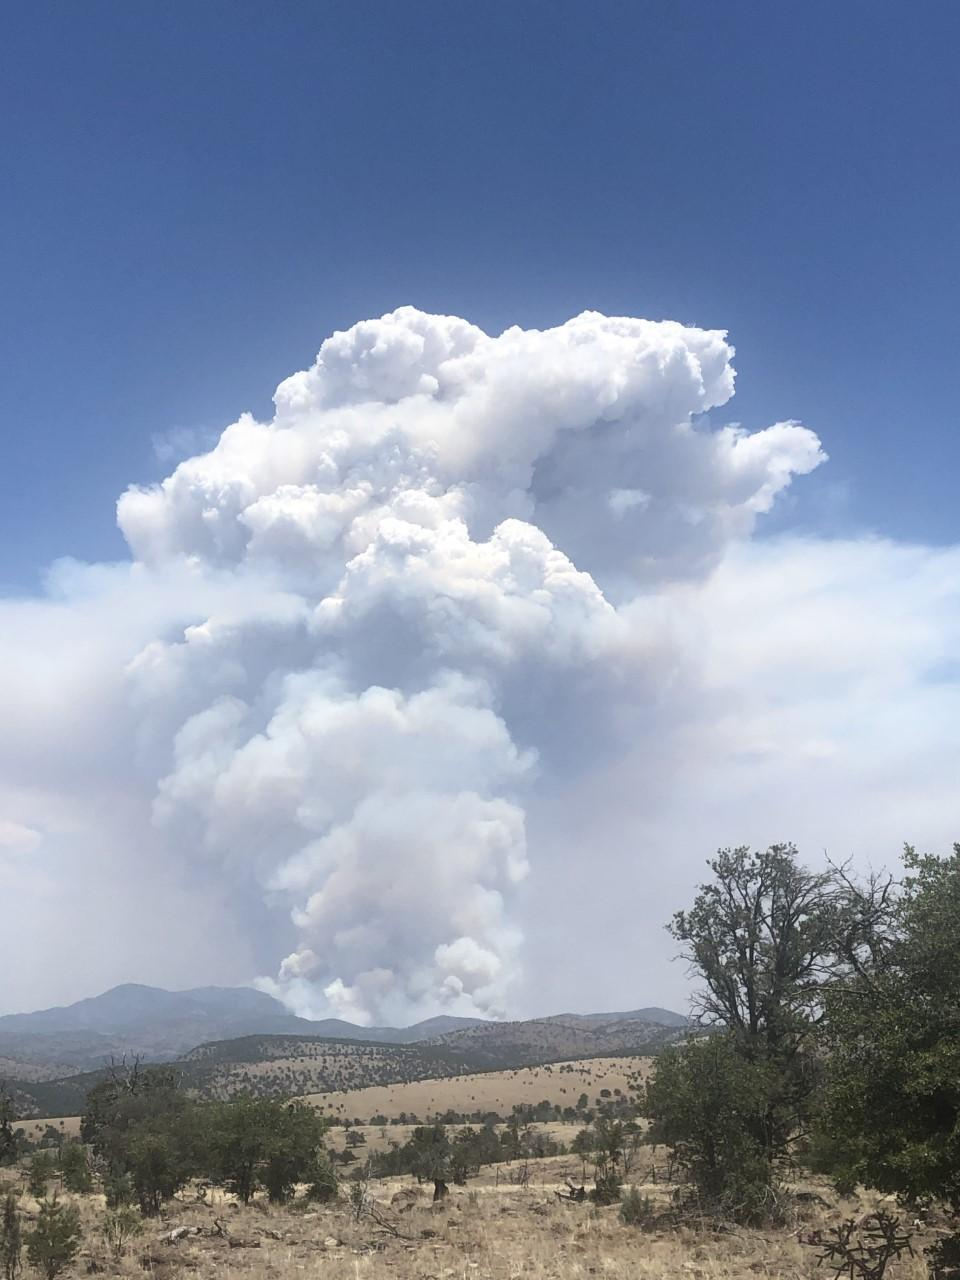 Daytime photo of a desert landscape. Blue sky and clouds. Brown hills covered in green shrubs with a mountain in the background with a large column of white smoke billowing up into the sky, expanding as it rises, filling the air with smoke.